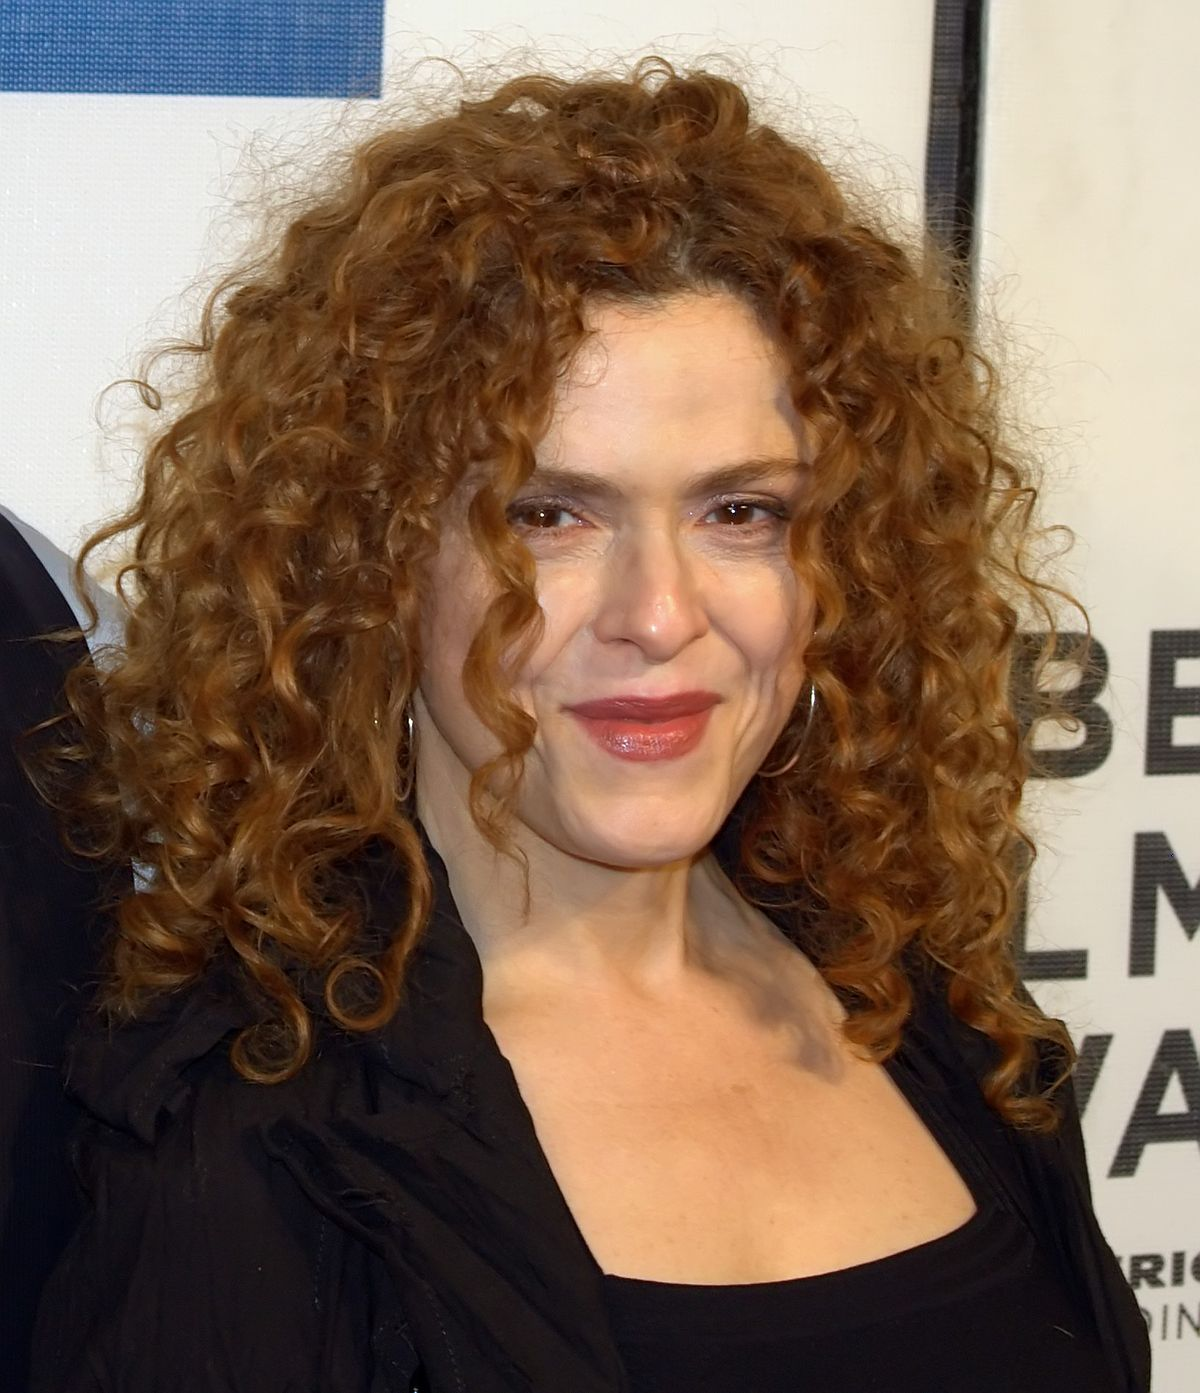 Forum on this topic: Maureen Mauricio (b. ?), bernadette-peters/